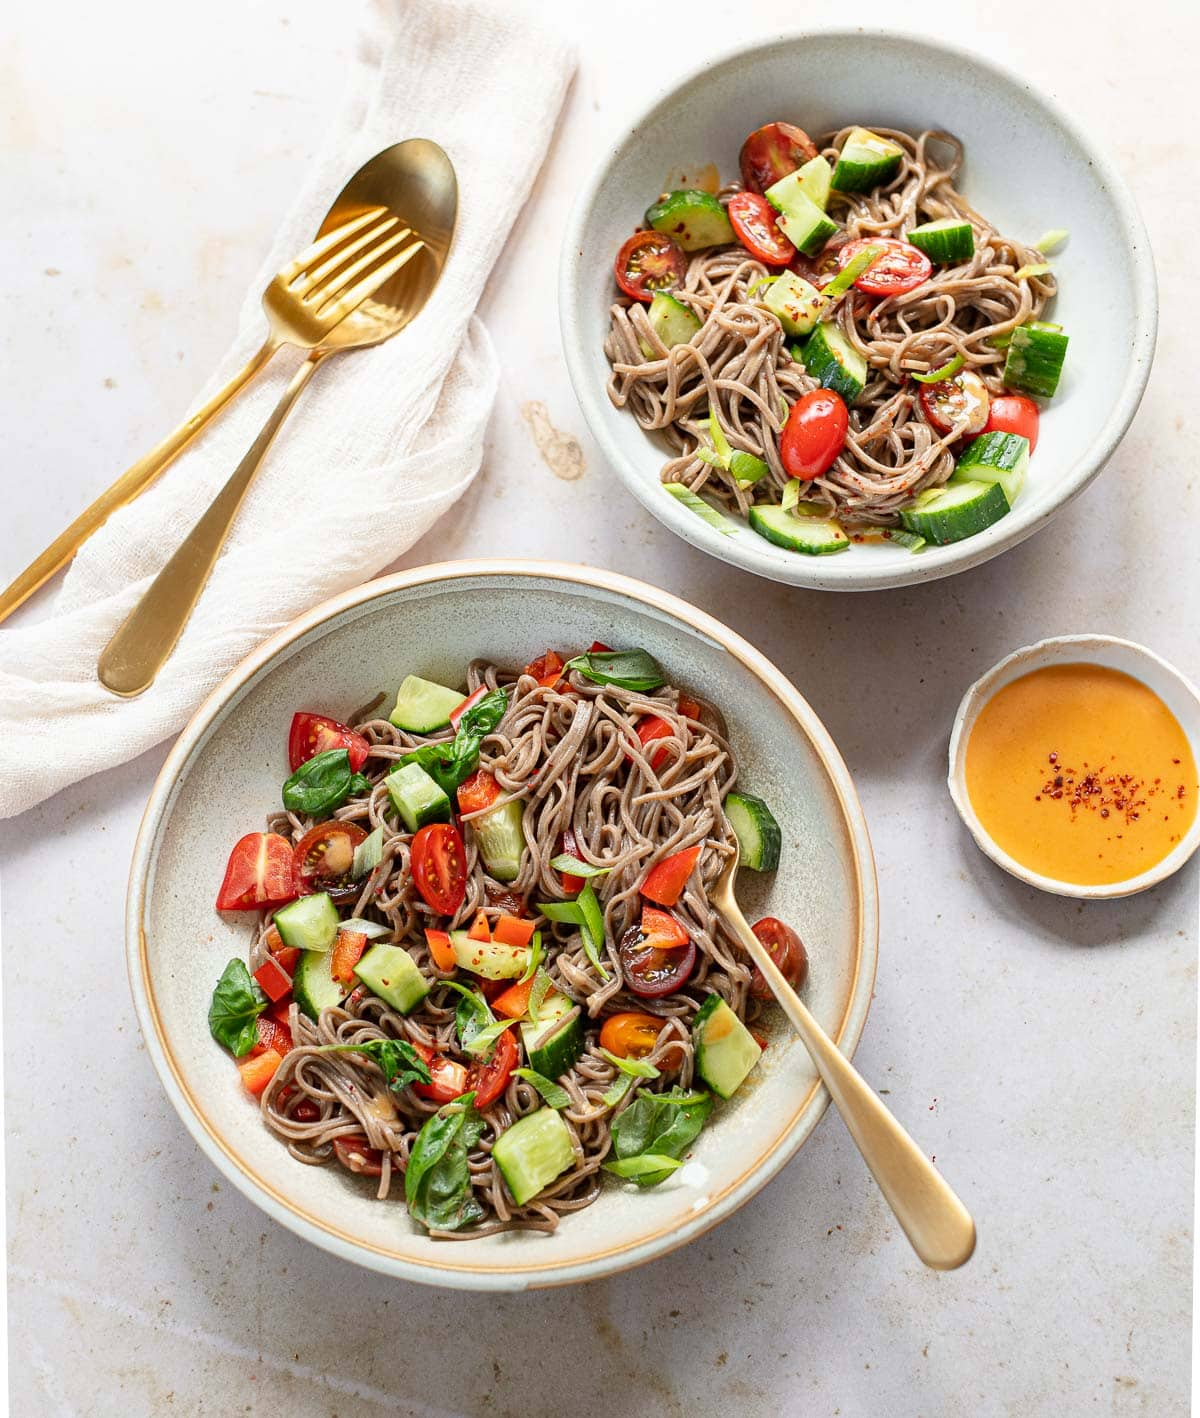 Cold buckwheat soba noodle salad tossed with cucumber, vegetables and spicy miso dressing in a bowl with a fork and dressing on the side.